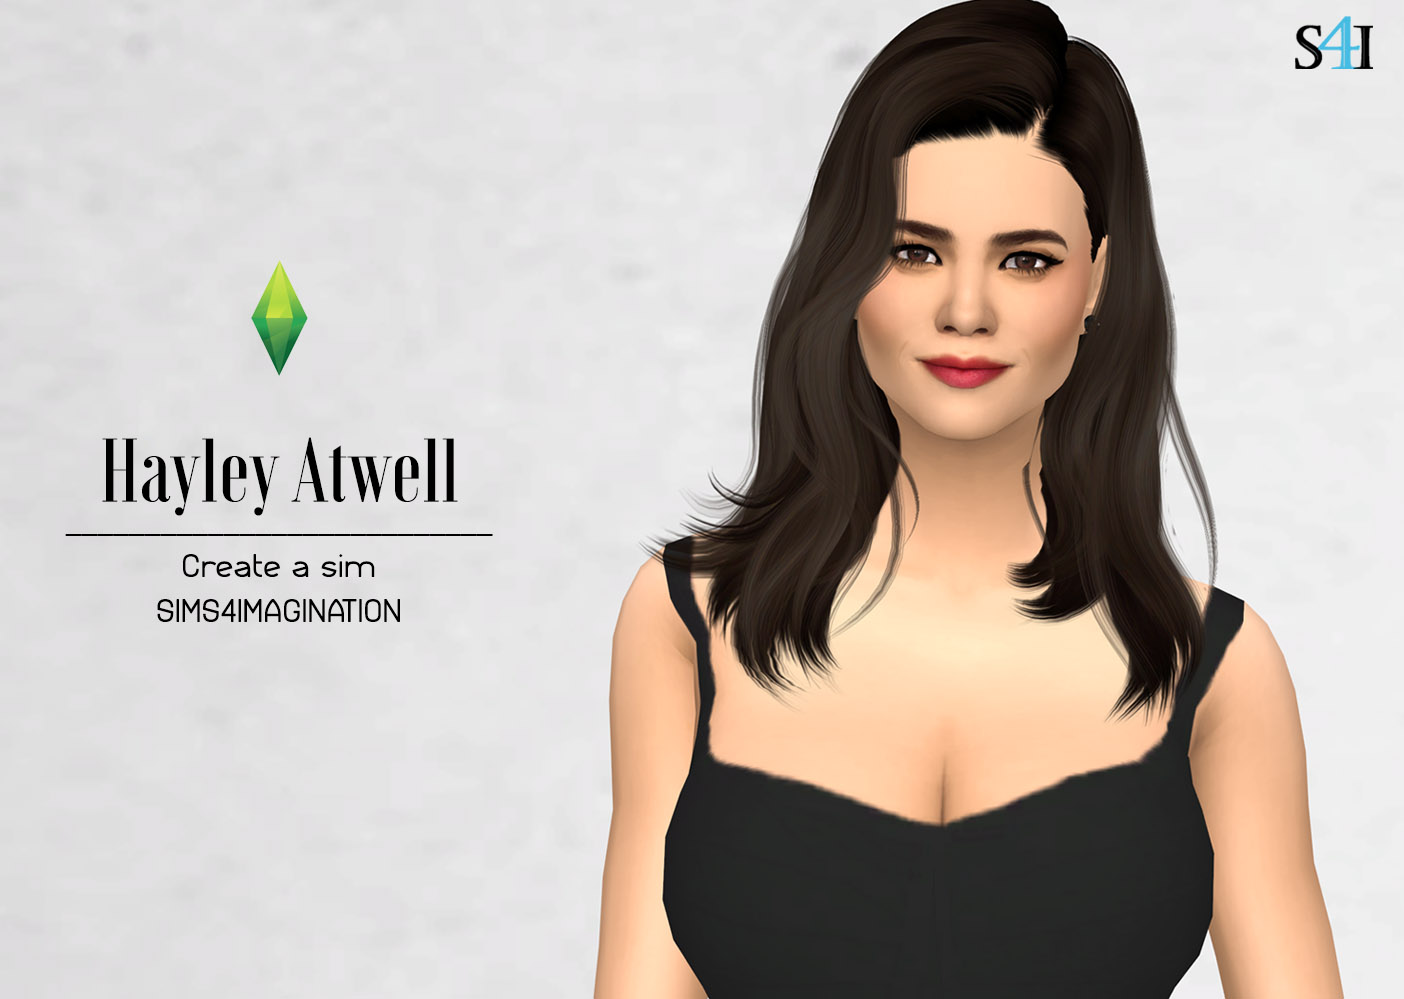 My Sims 4 CAS: Hayley Atwell (Patreon)